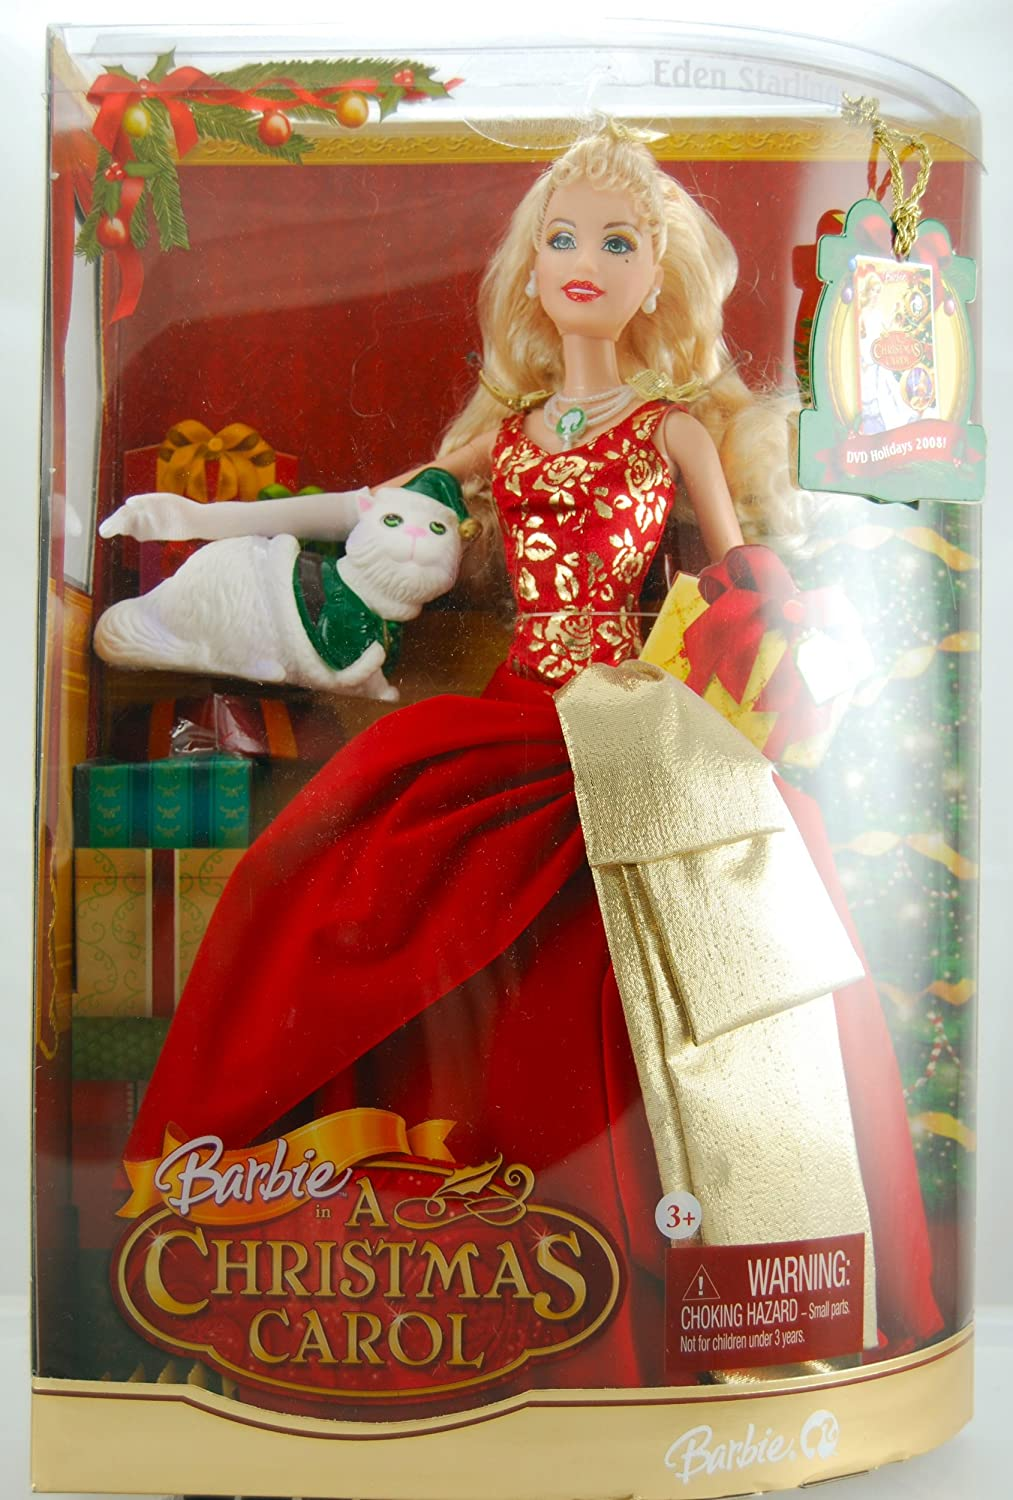 Amazon.com: Barbie - A Christmas Carol - Eden Starling Doll ...